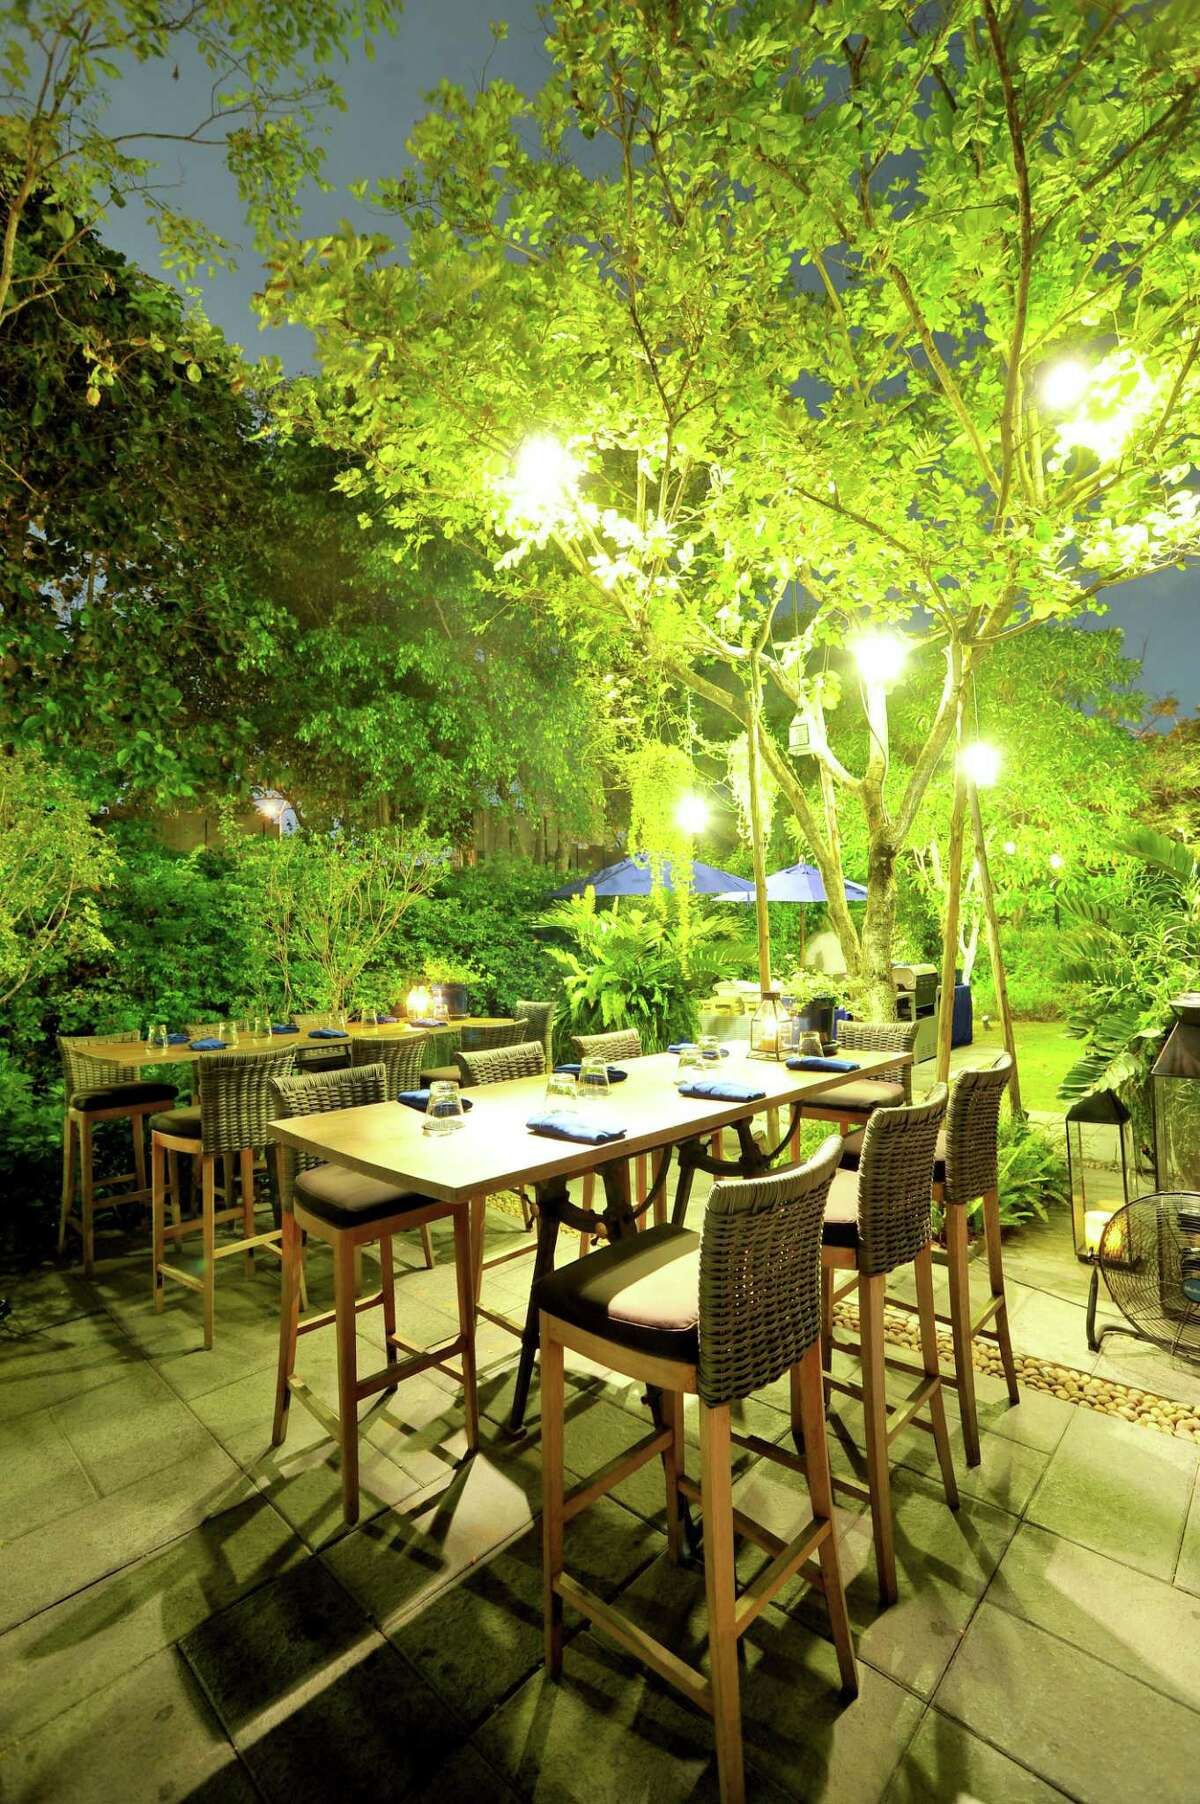 Outdoor chandeliers and hanging lights make the patio look romantic.